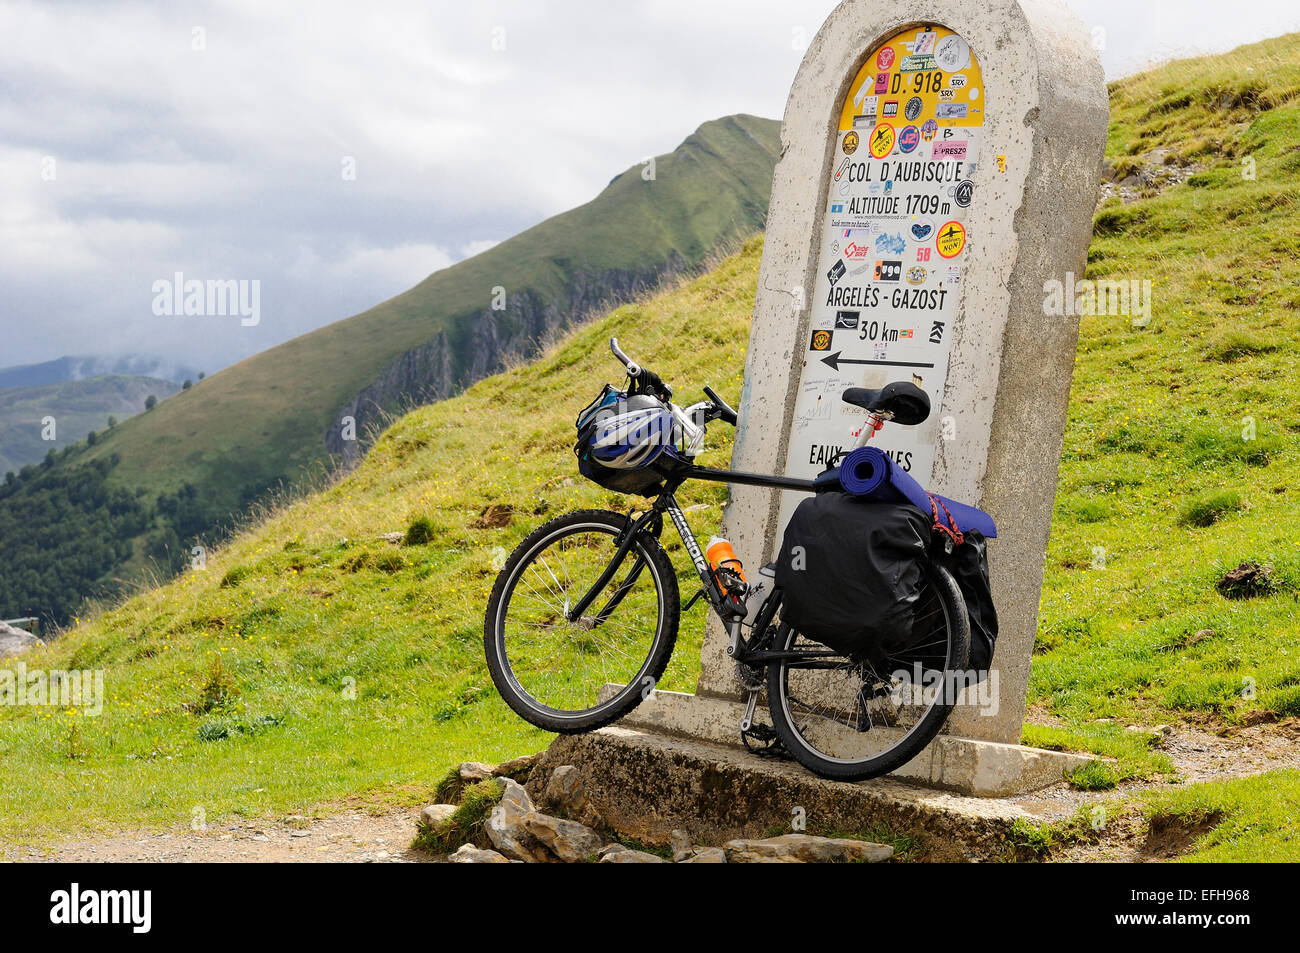 A sign post on Col d'Aubisque (1709m), Pyrenees, (France) with a bicycle leaning. Stock Photo